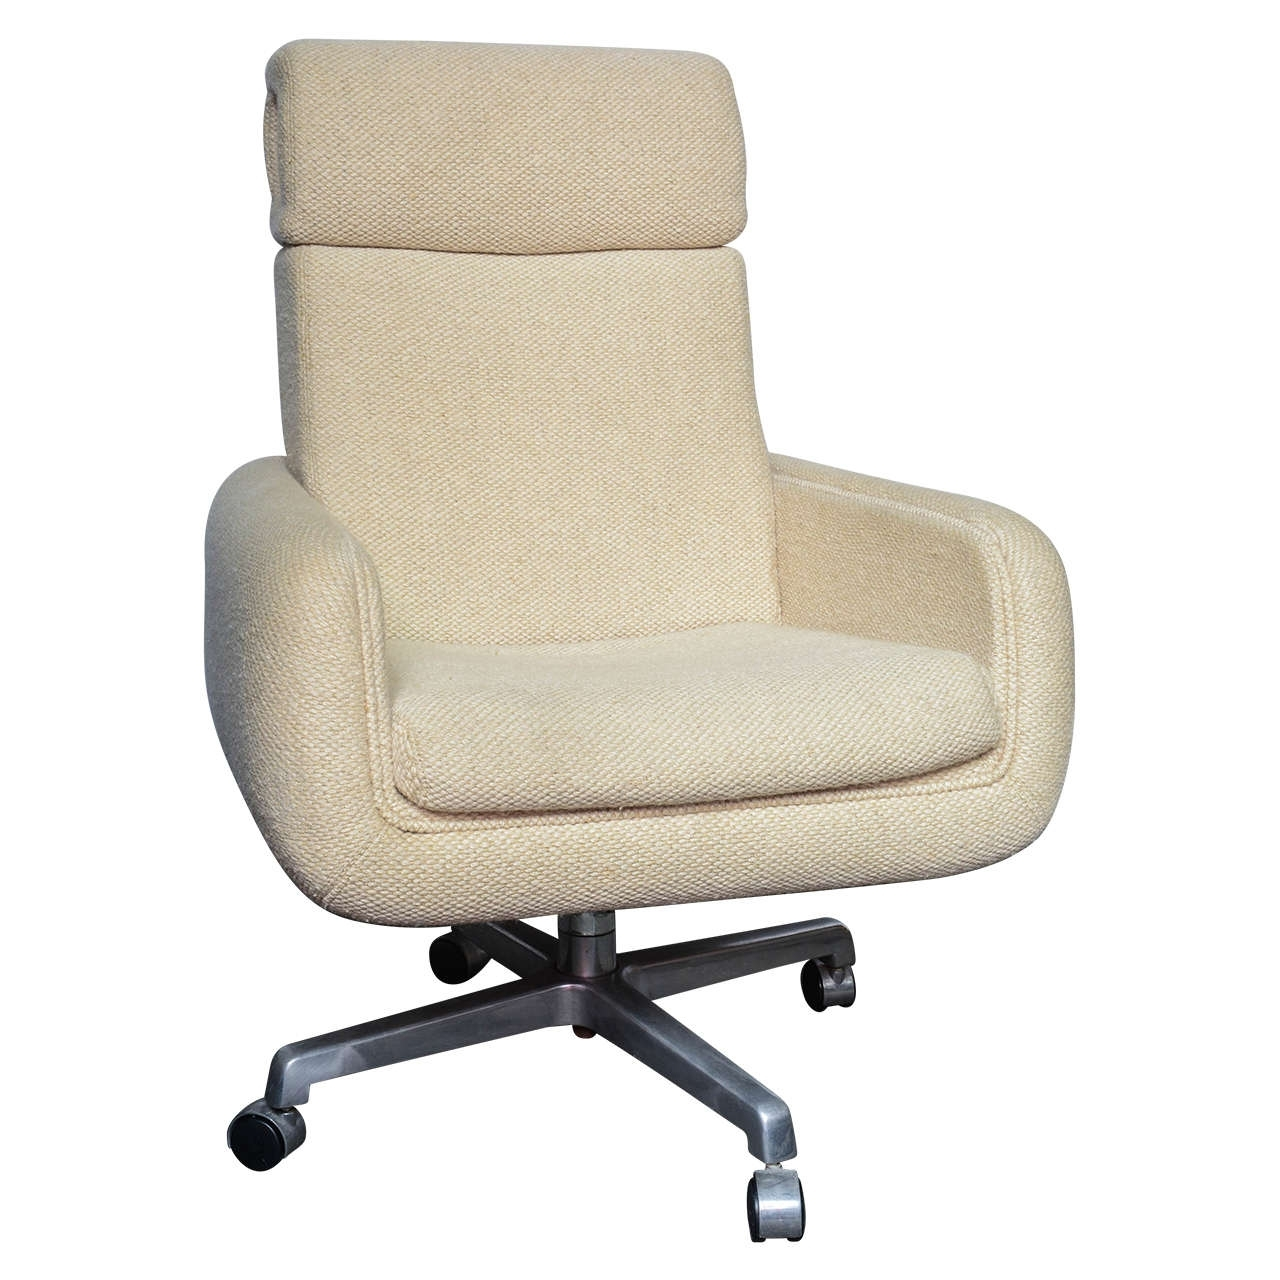 Www Pertaining To Heavy Duty Executive Office Chairs (View 13 of 20)